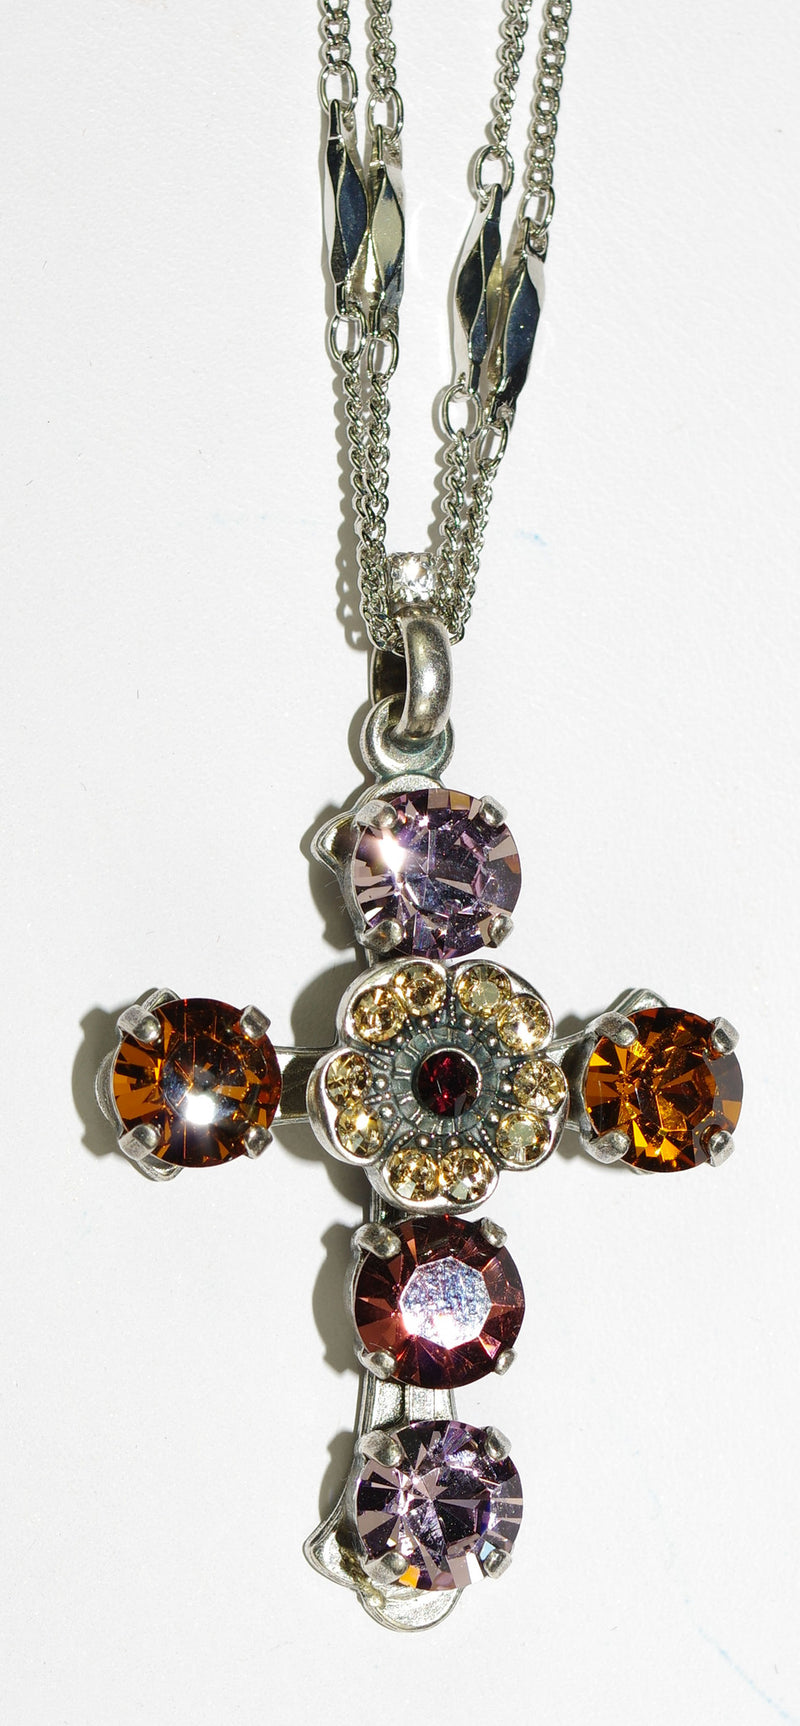 "MARIANA CROSS PENDANT DREAM: amber, lavender, topaz stones in silver setting, 20"" adjustable chain"